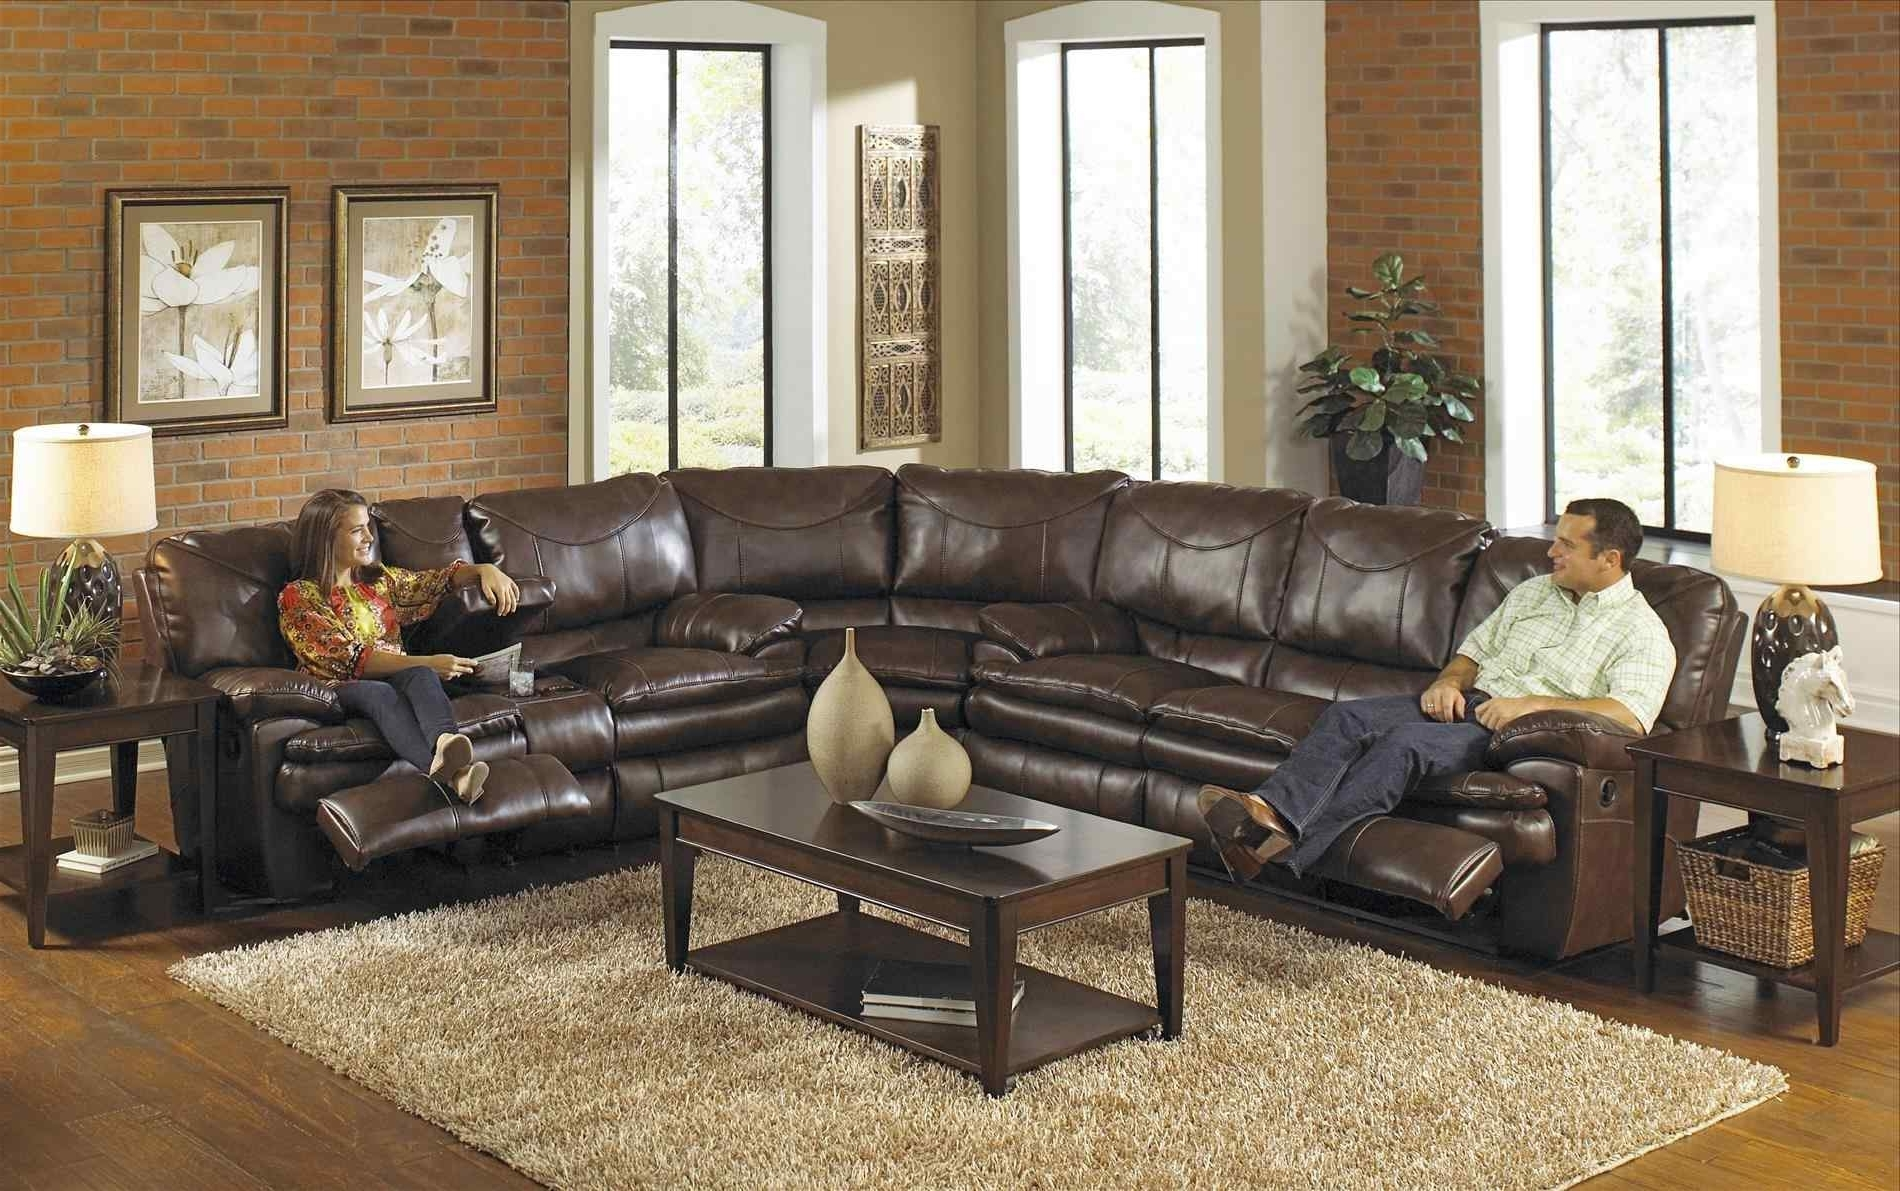 Thomasville Sectional Sofas Pertaining To Most Up To Date The Images Collection Of Concord Sectional Price Leather Furniture (View 12 of 15)